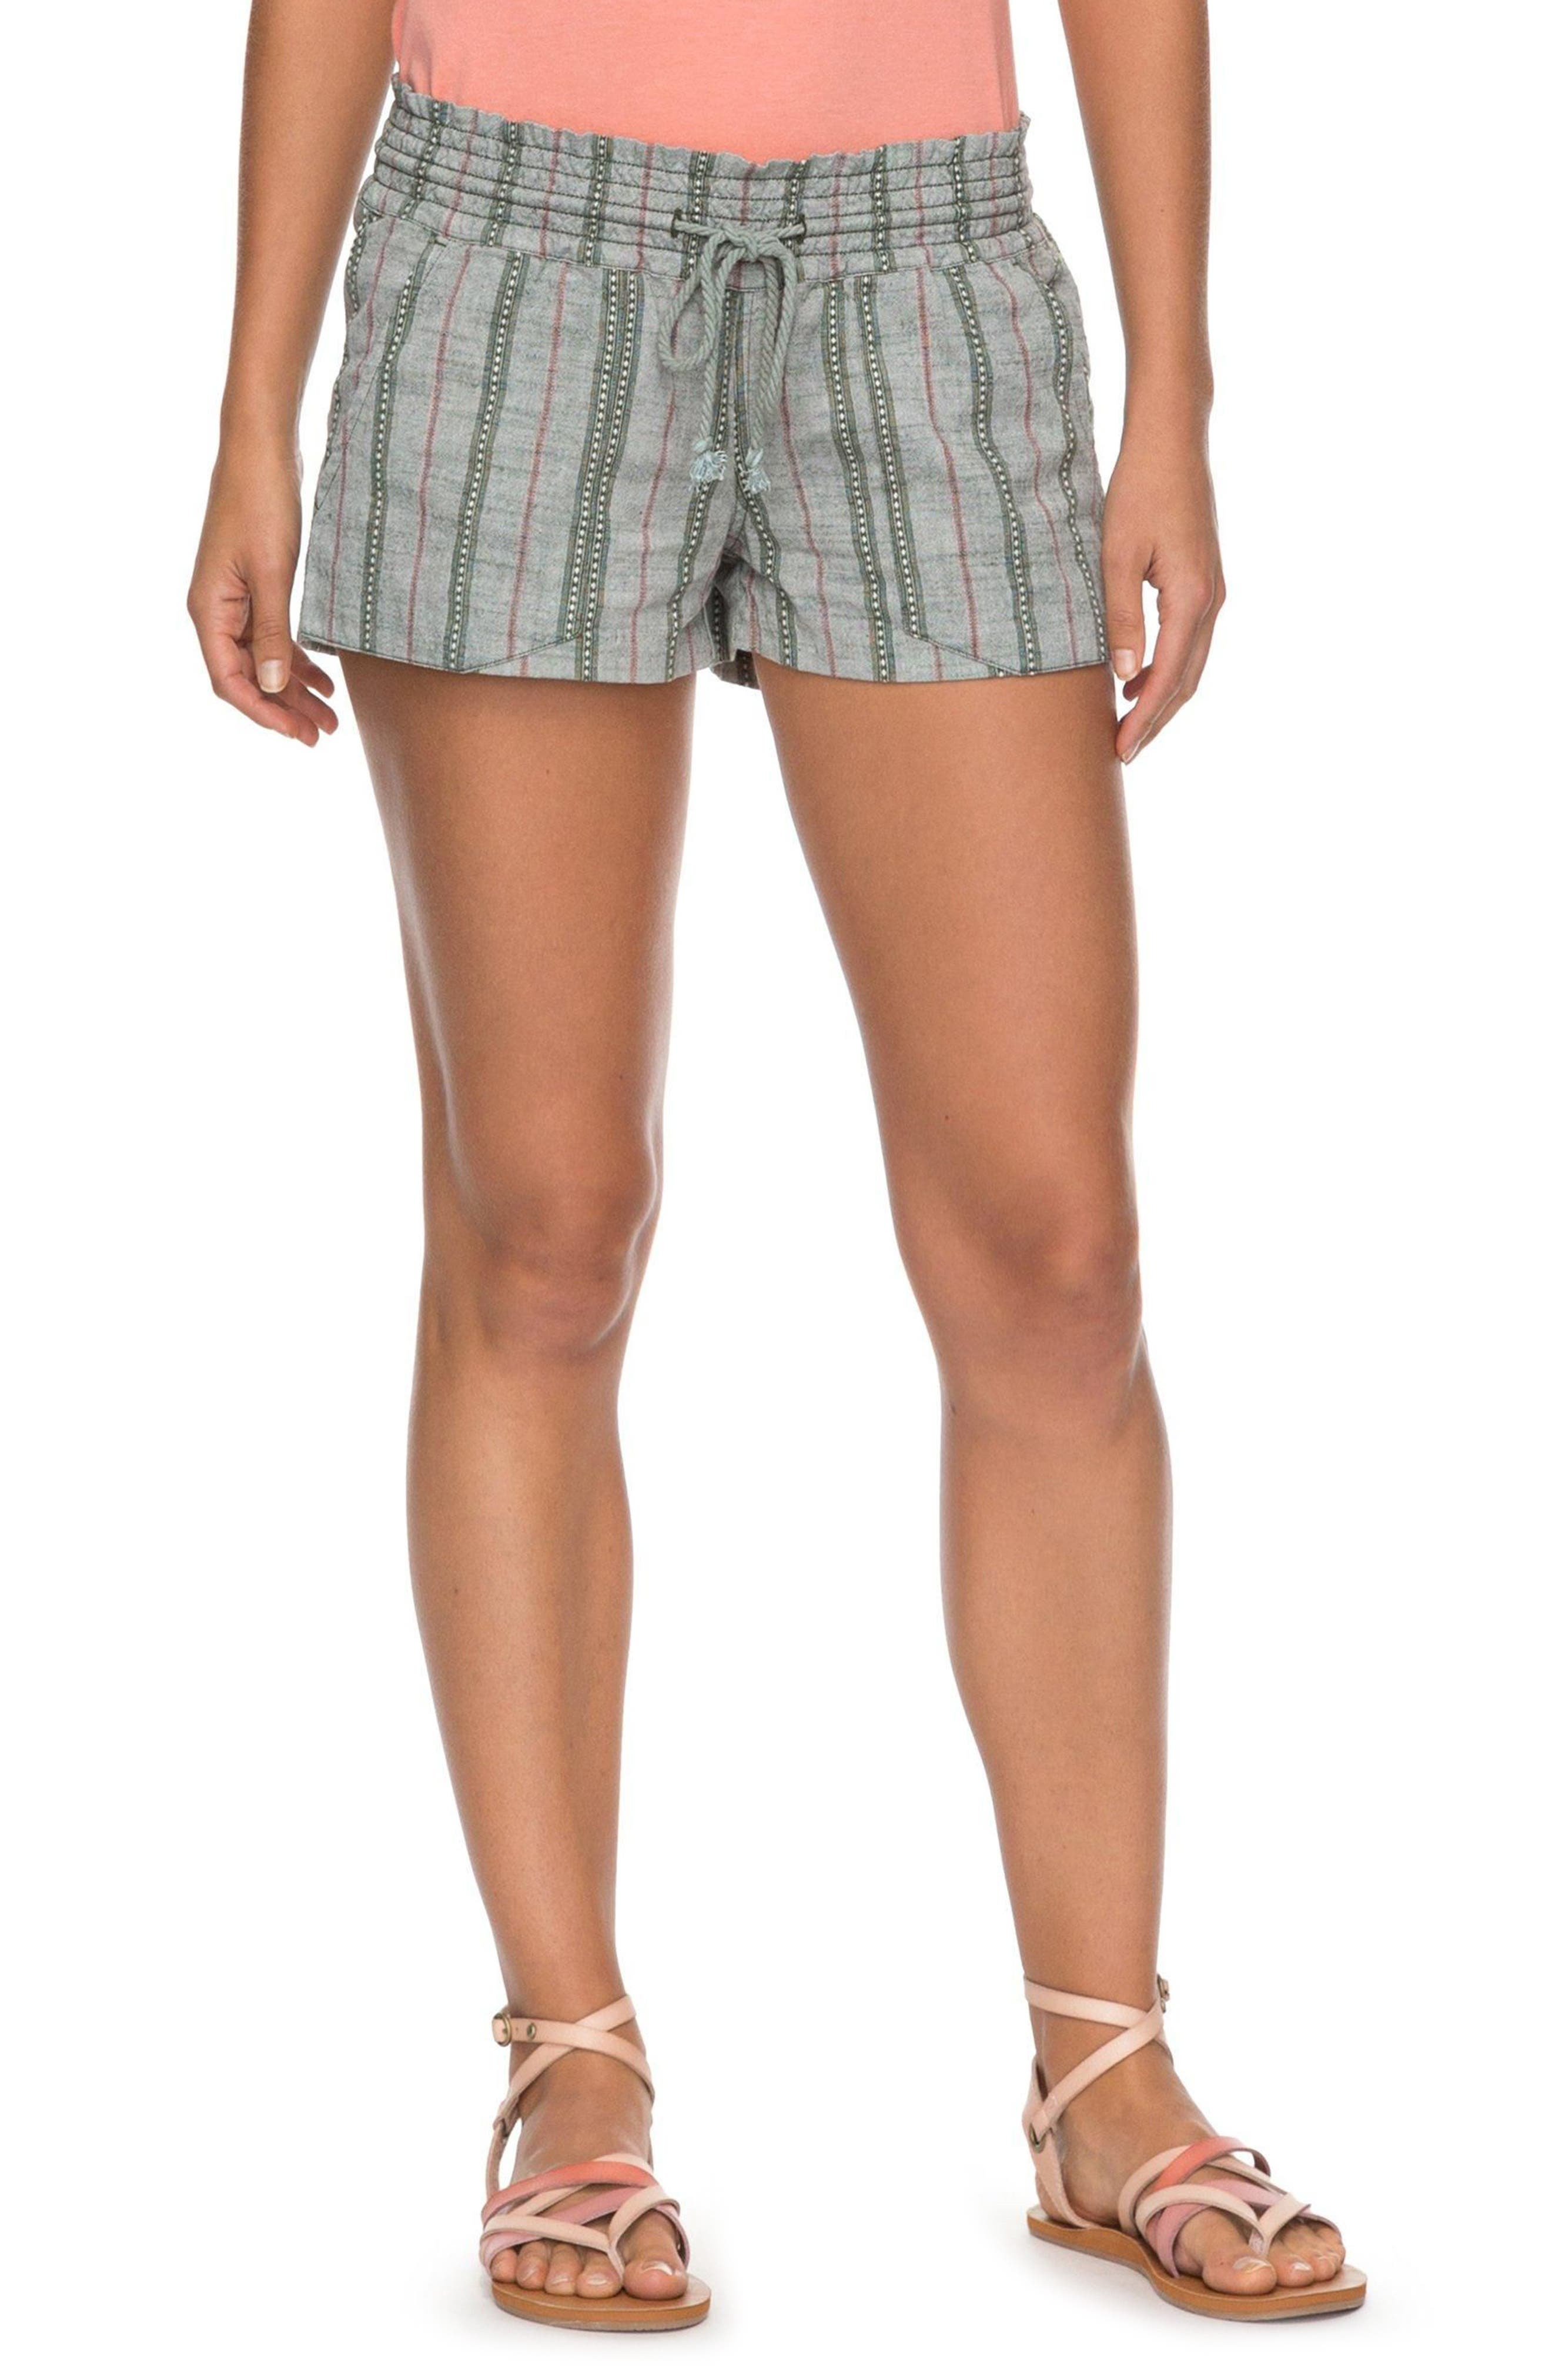 Oceanside Beach Shorts,                         Main,                         color, 300